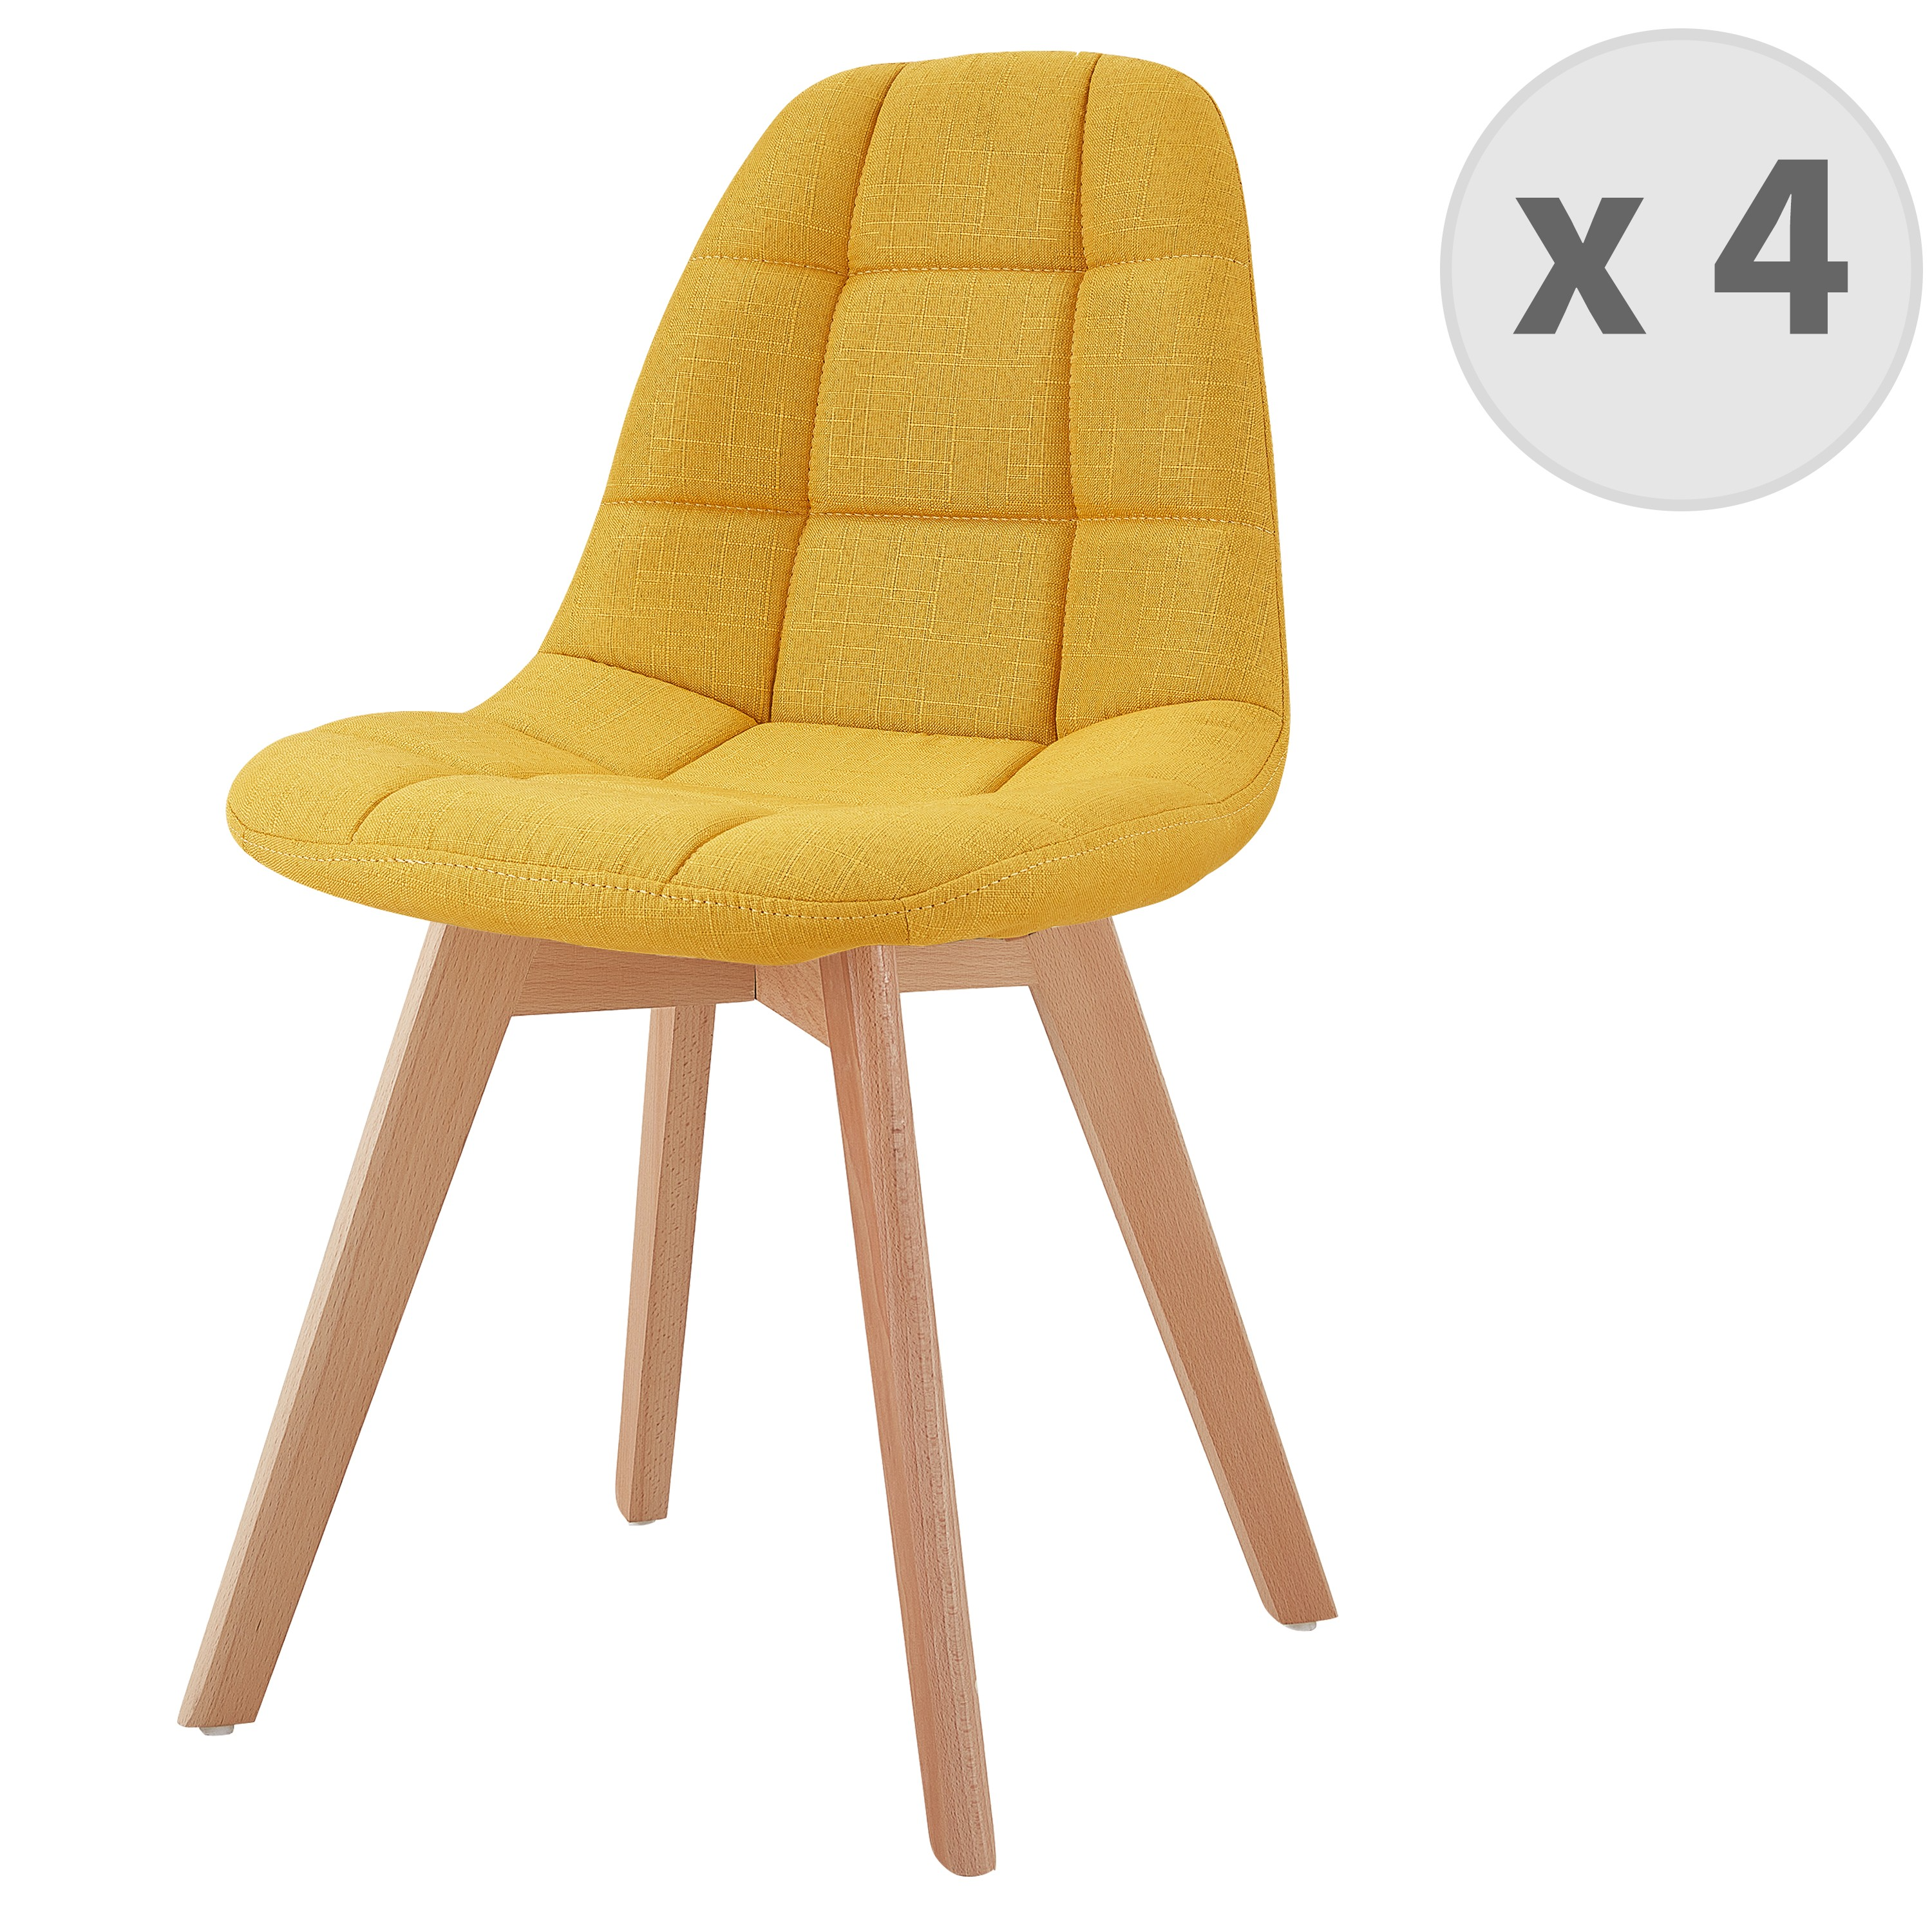 Chaise scandinave tissu curry pied hêtre (x4)